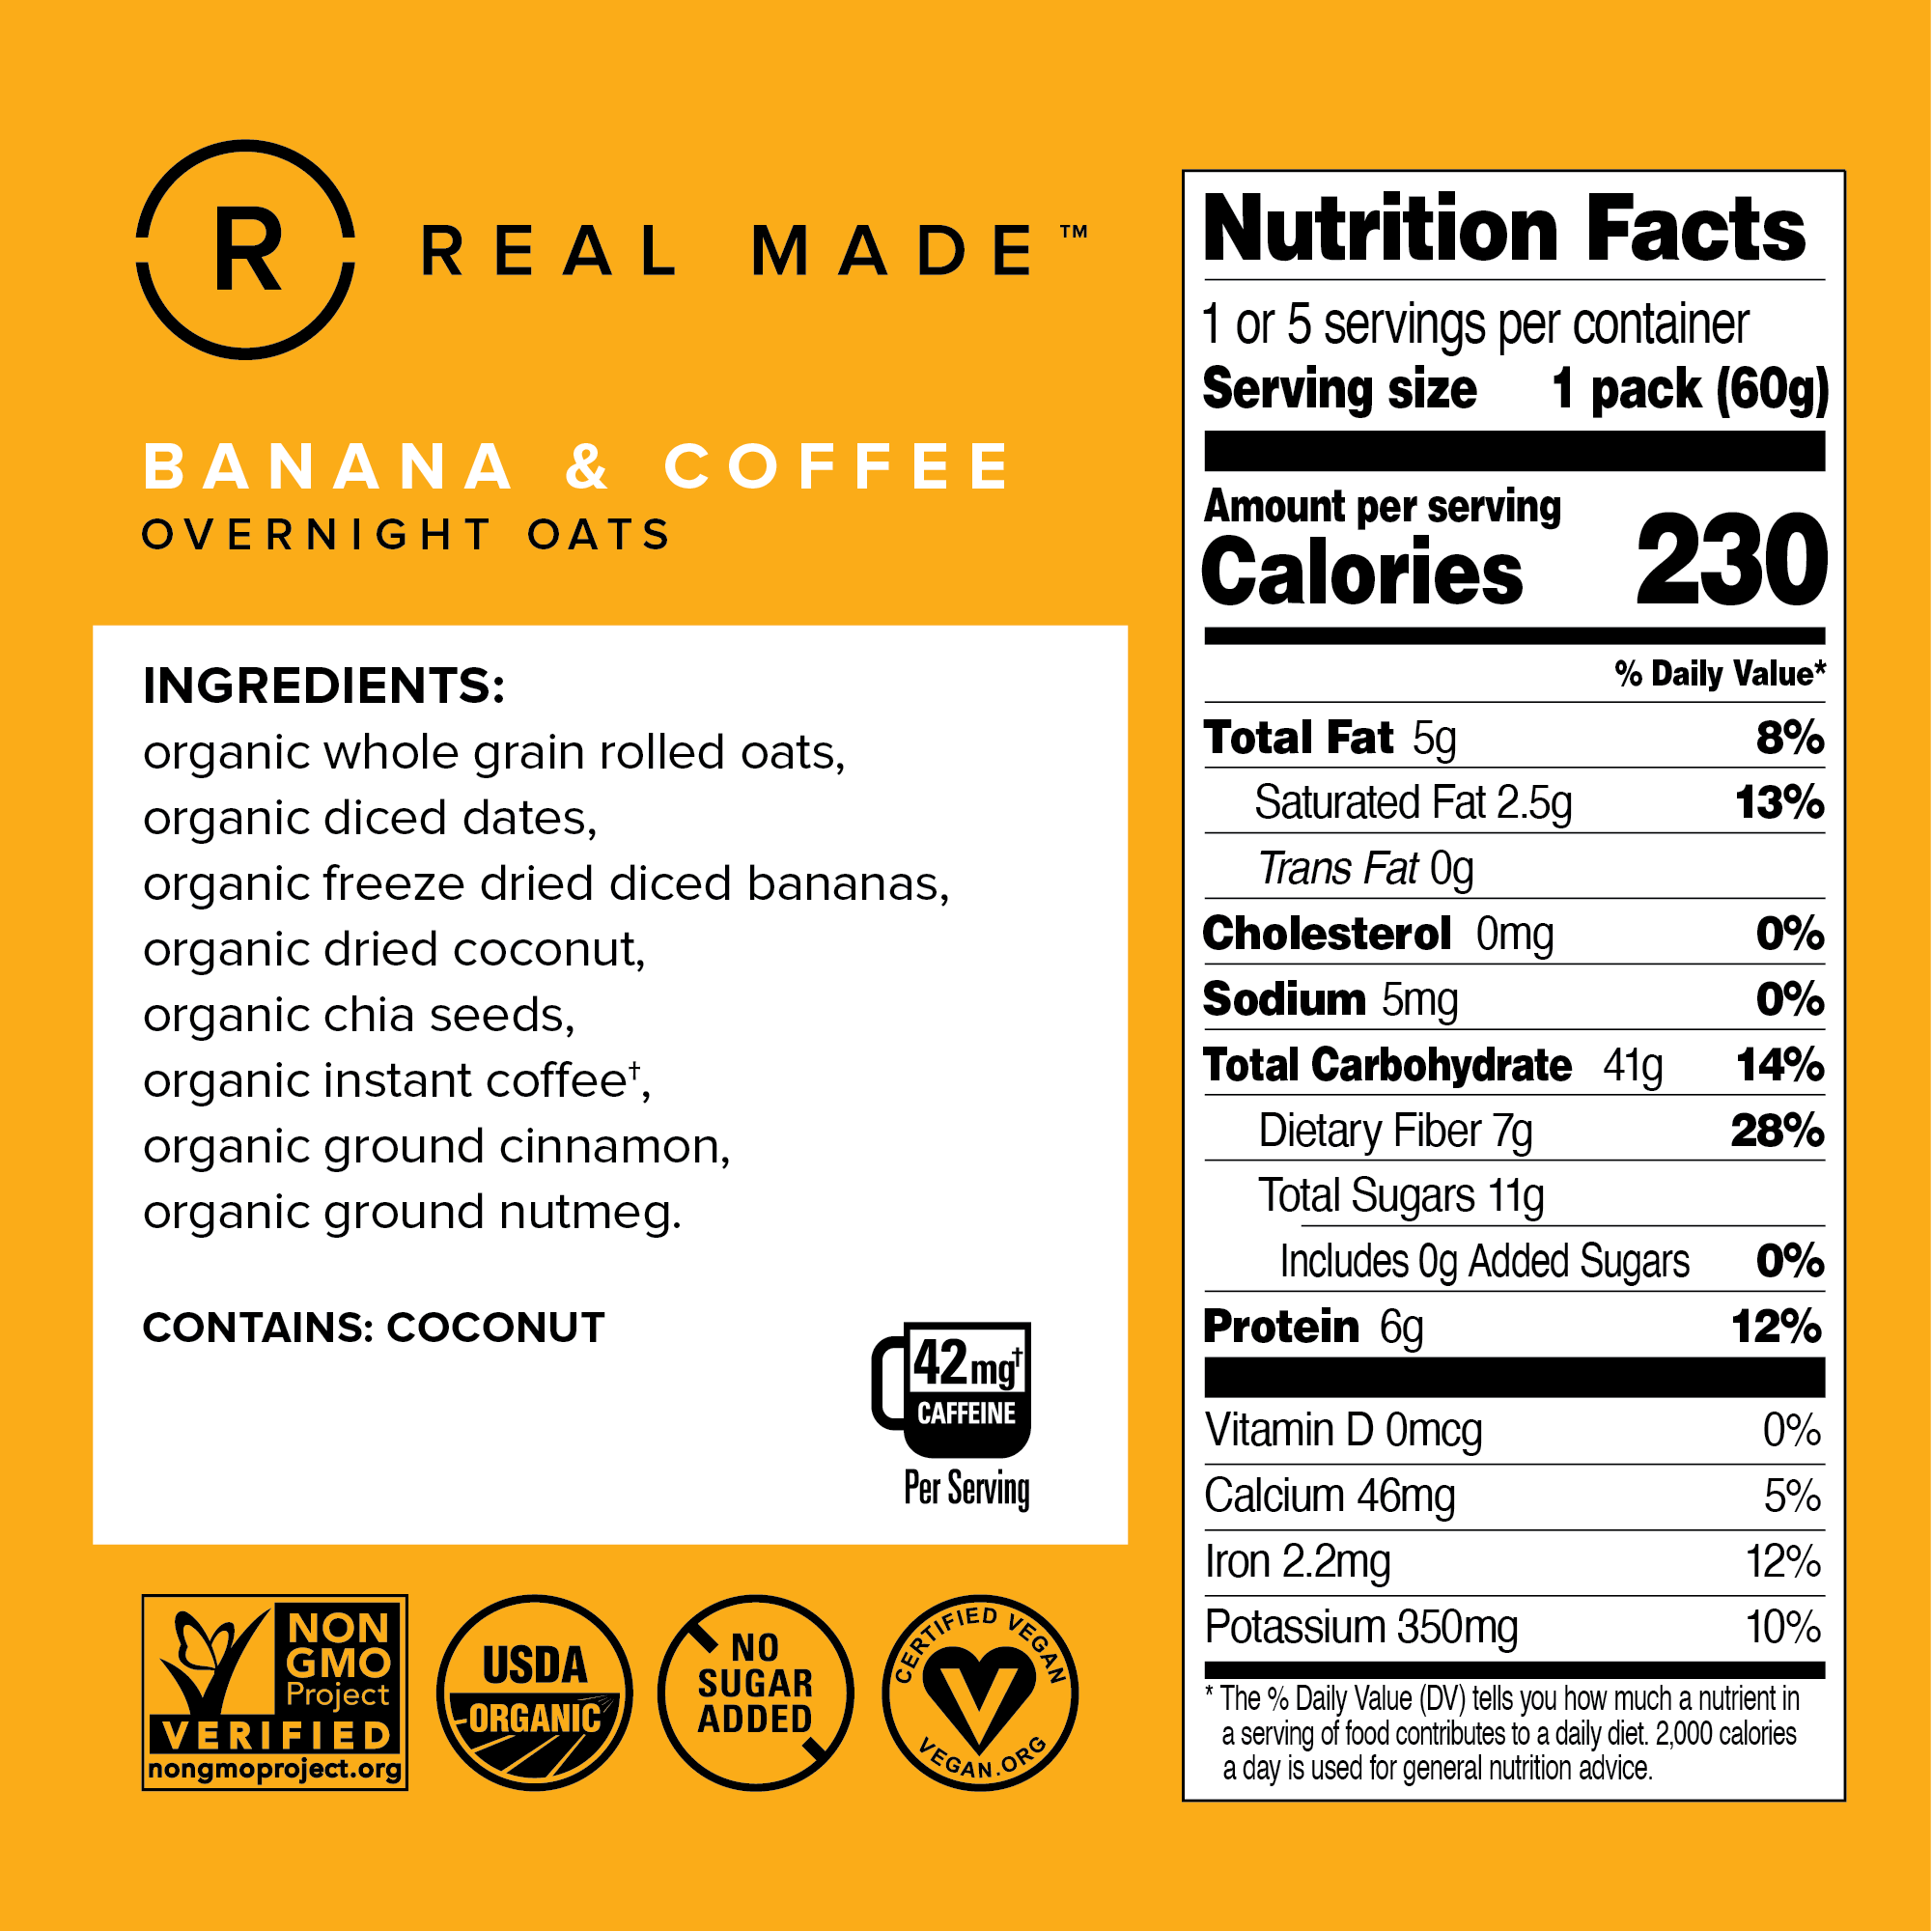 Banana & Coffee Nutritional Information